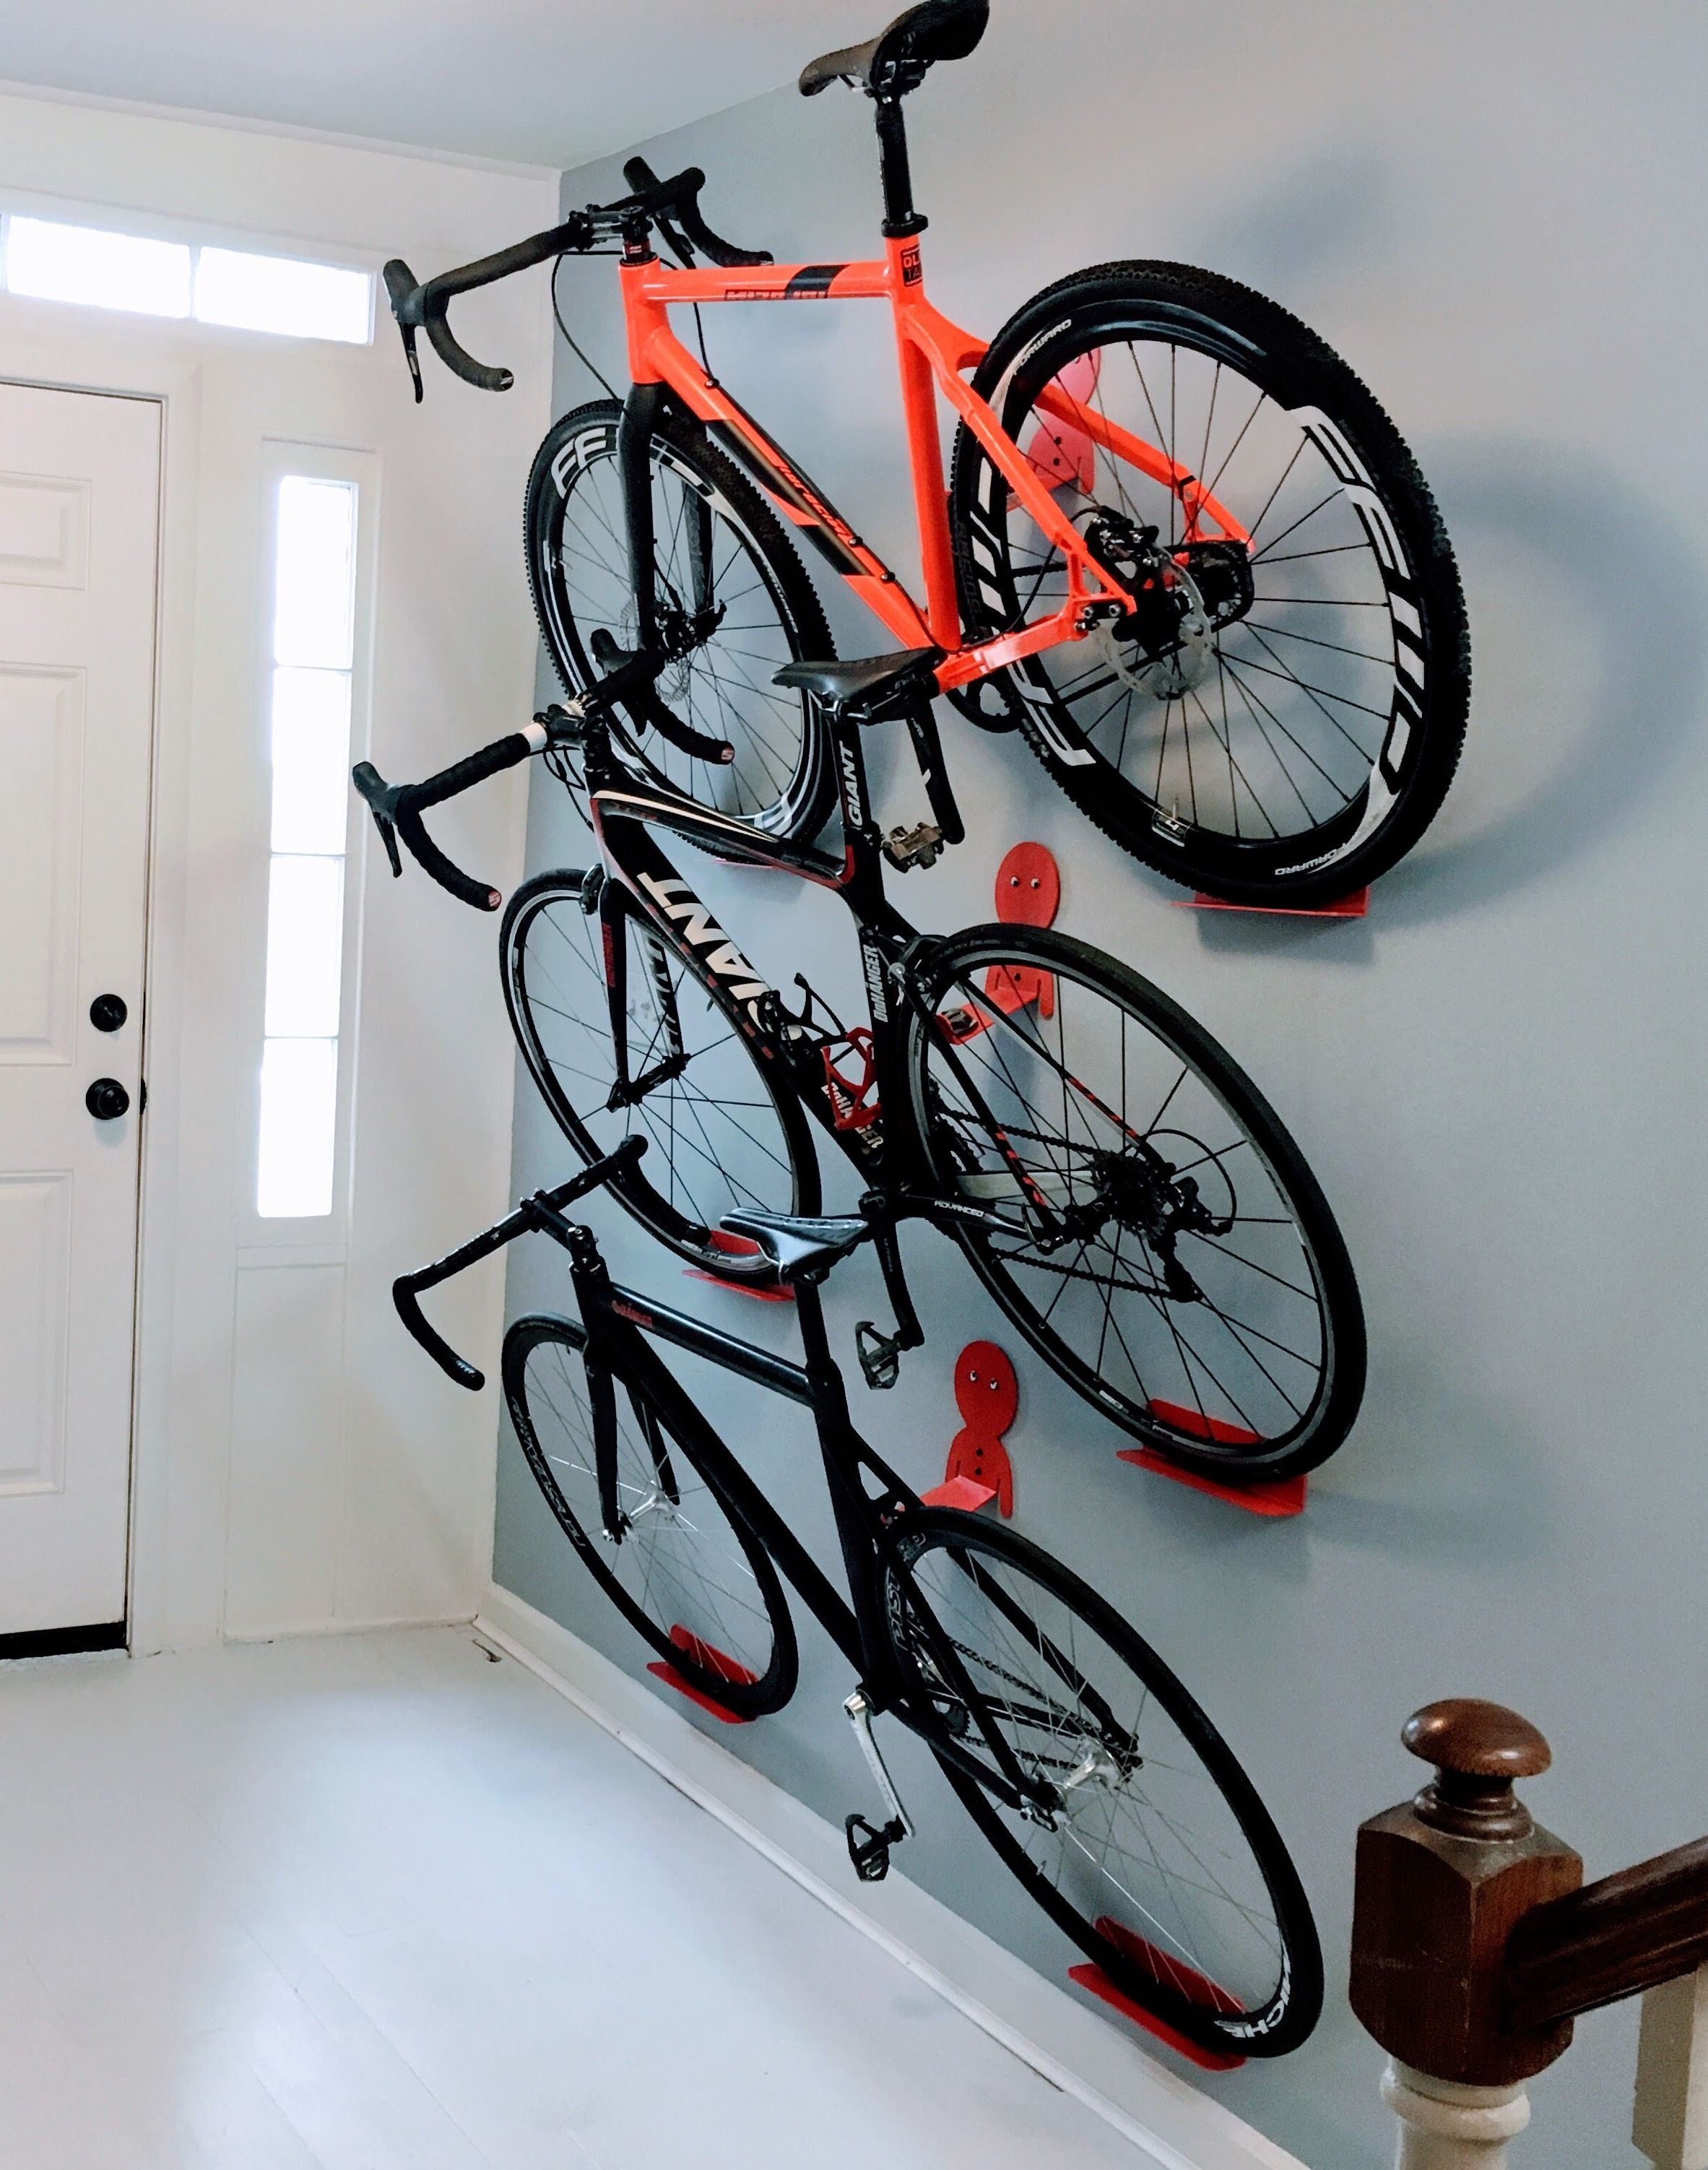 How To Hang Bike On Wall multiple bikes hanging rack system. dahanger dan pedal hook